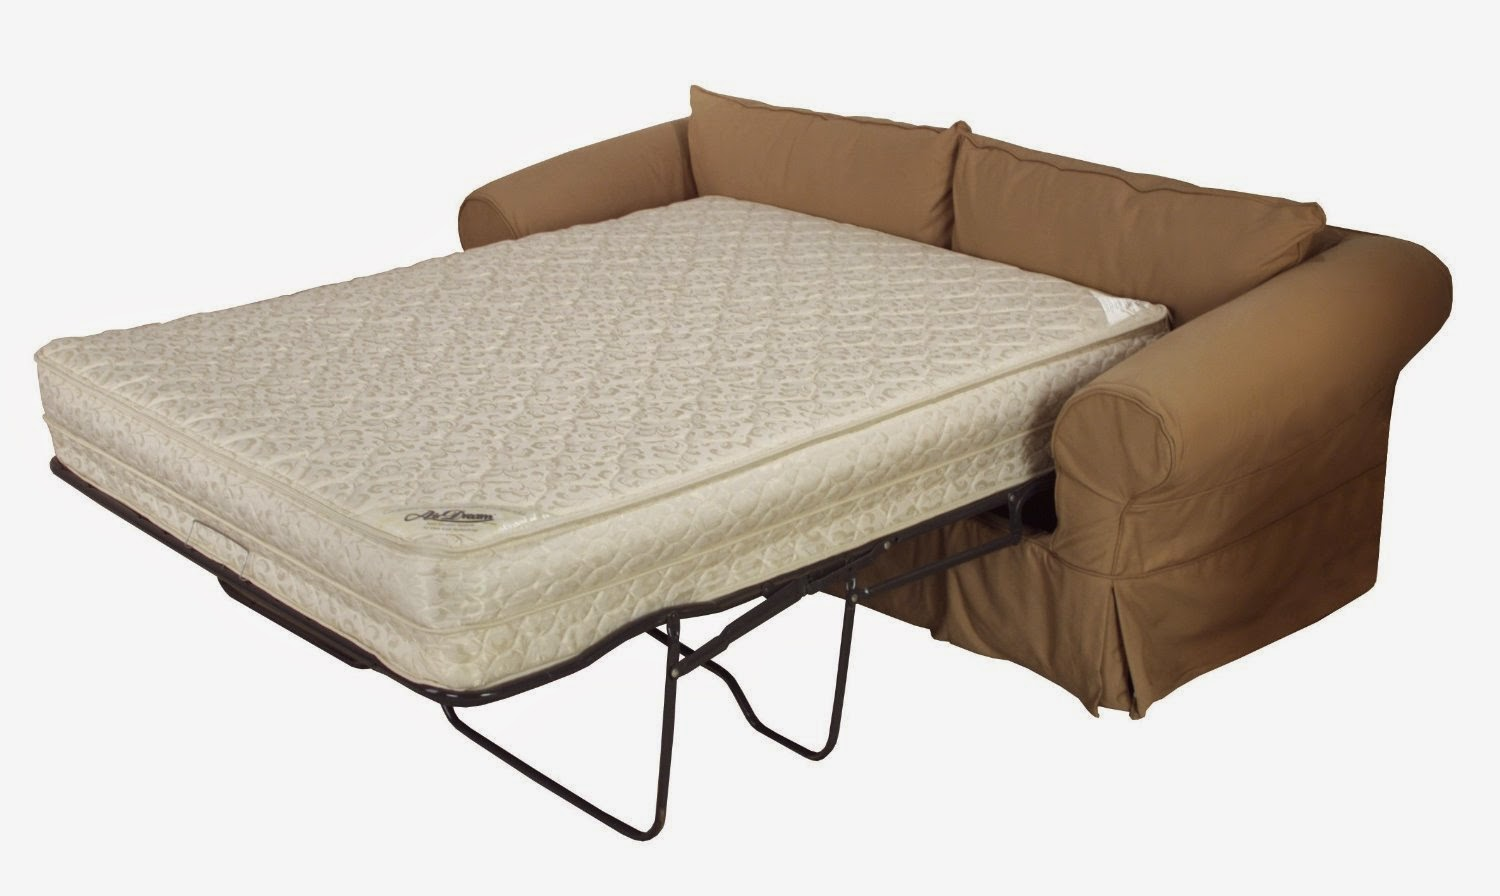 Fold out couch fold out couch bed Sleeper sofa mattress